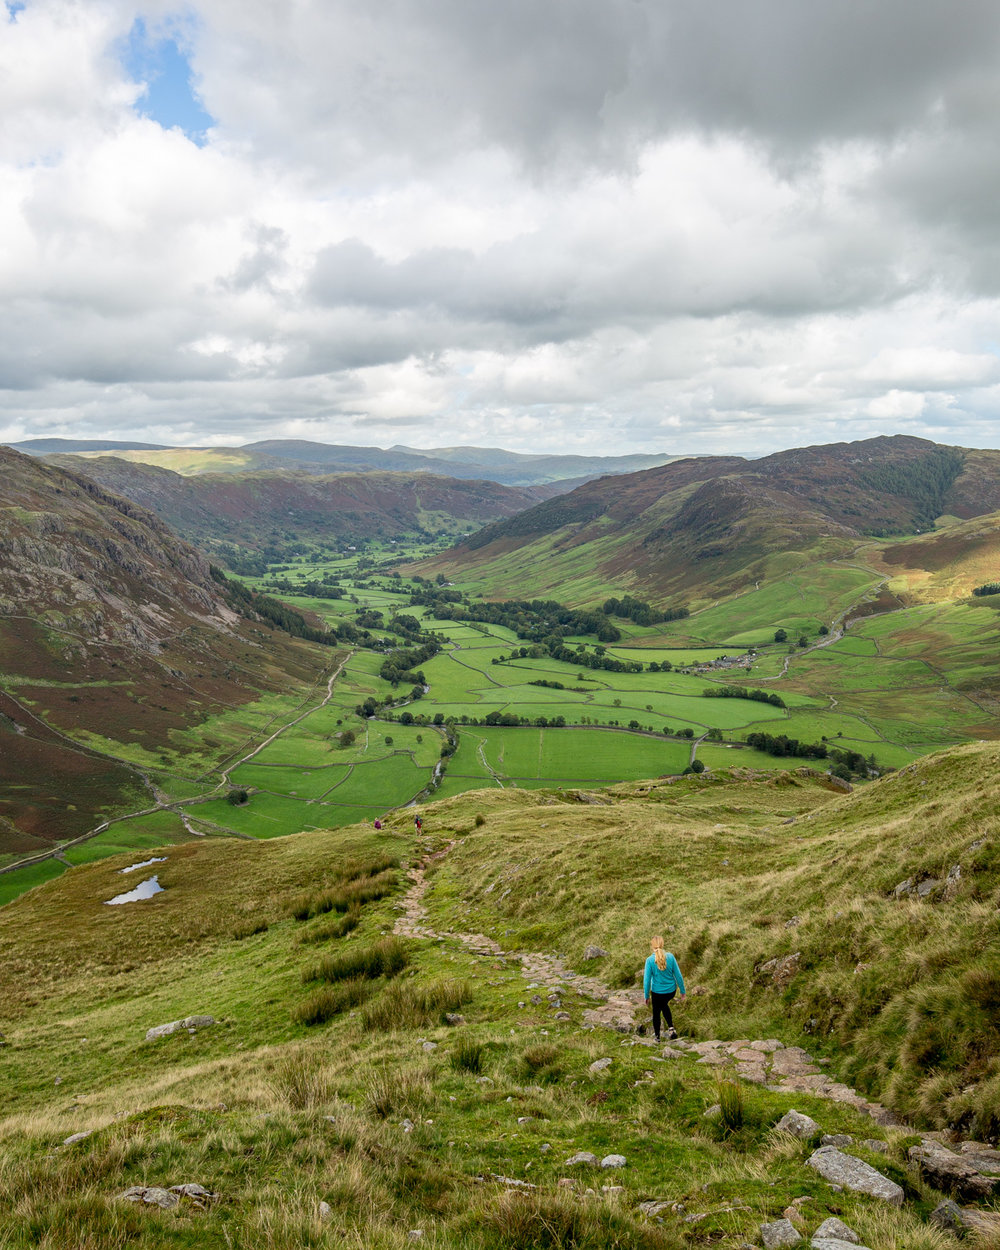 The view of the Langdale Valley from the Band